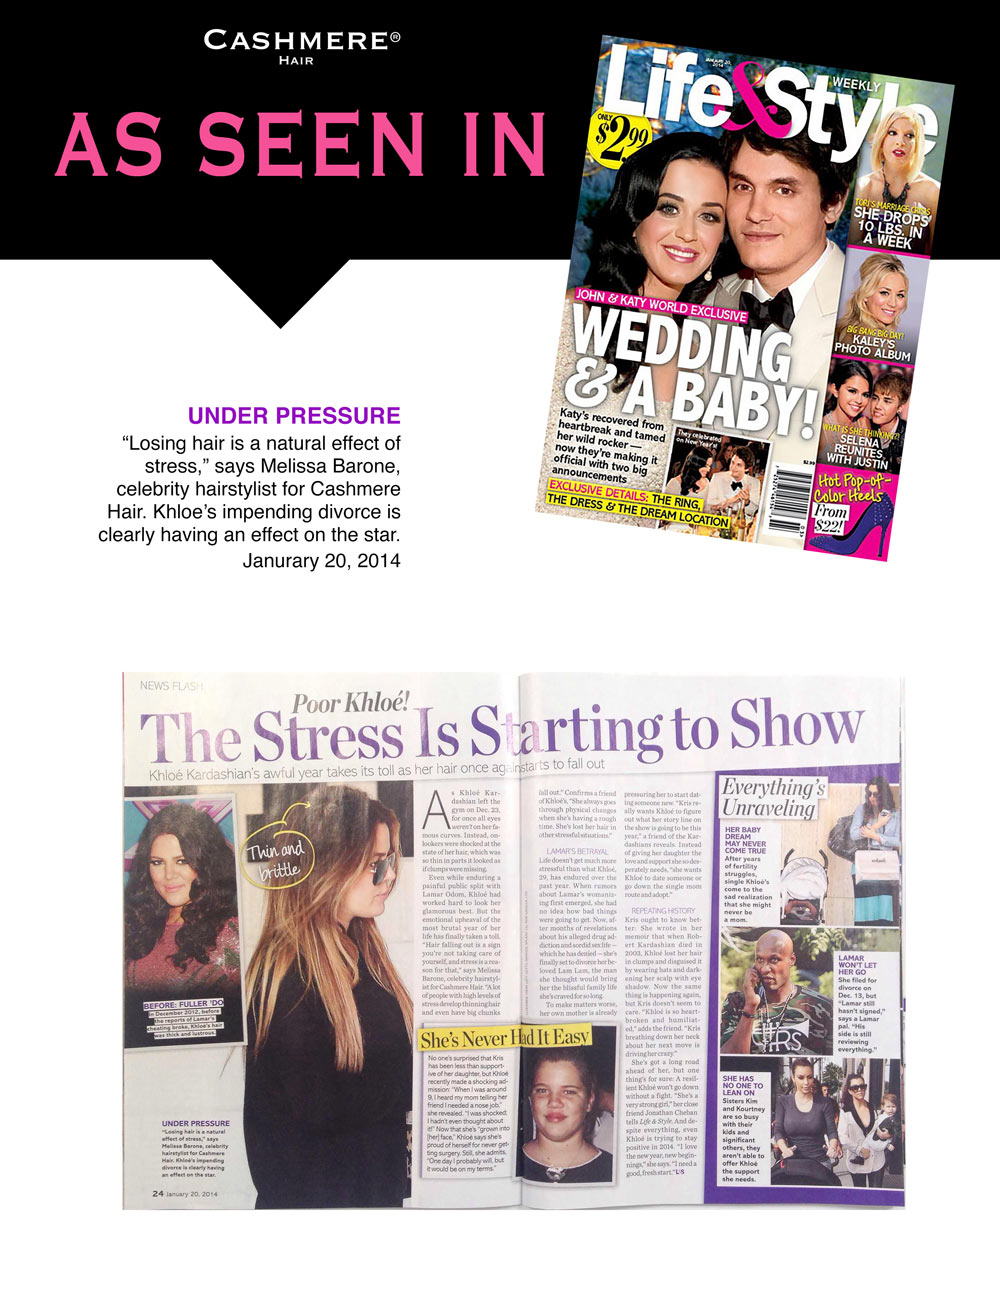 cashmere hair life and style magazine